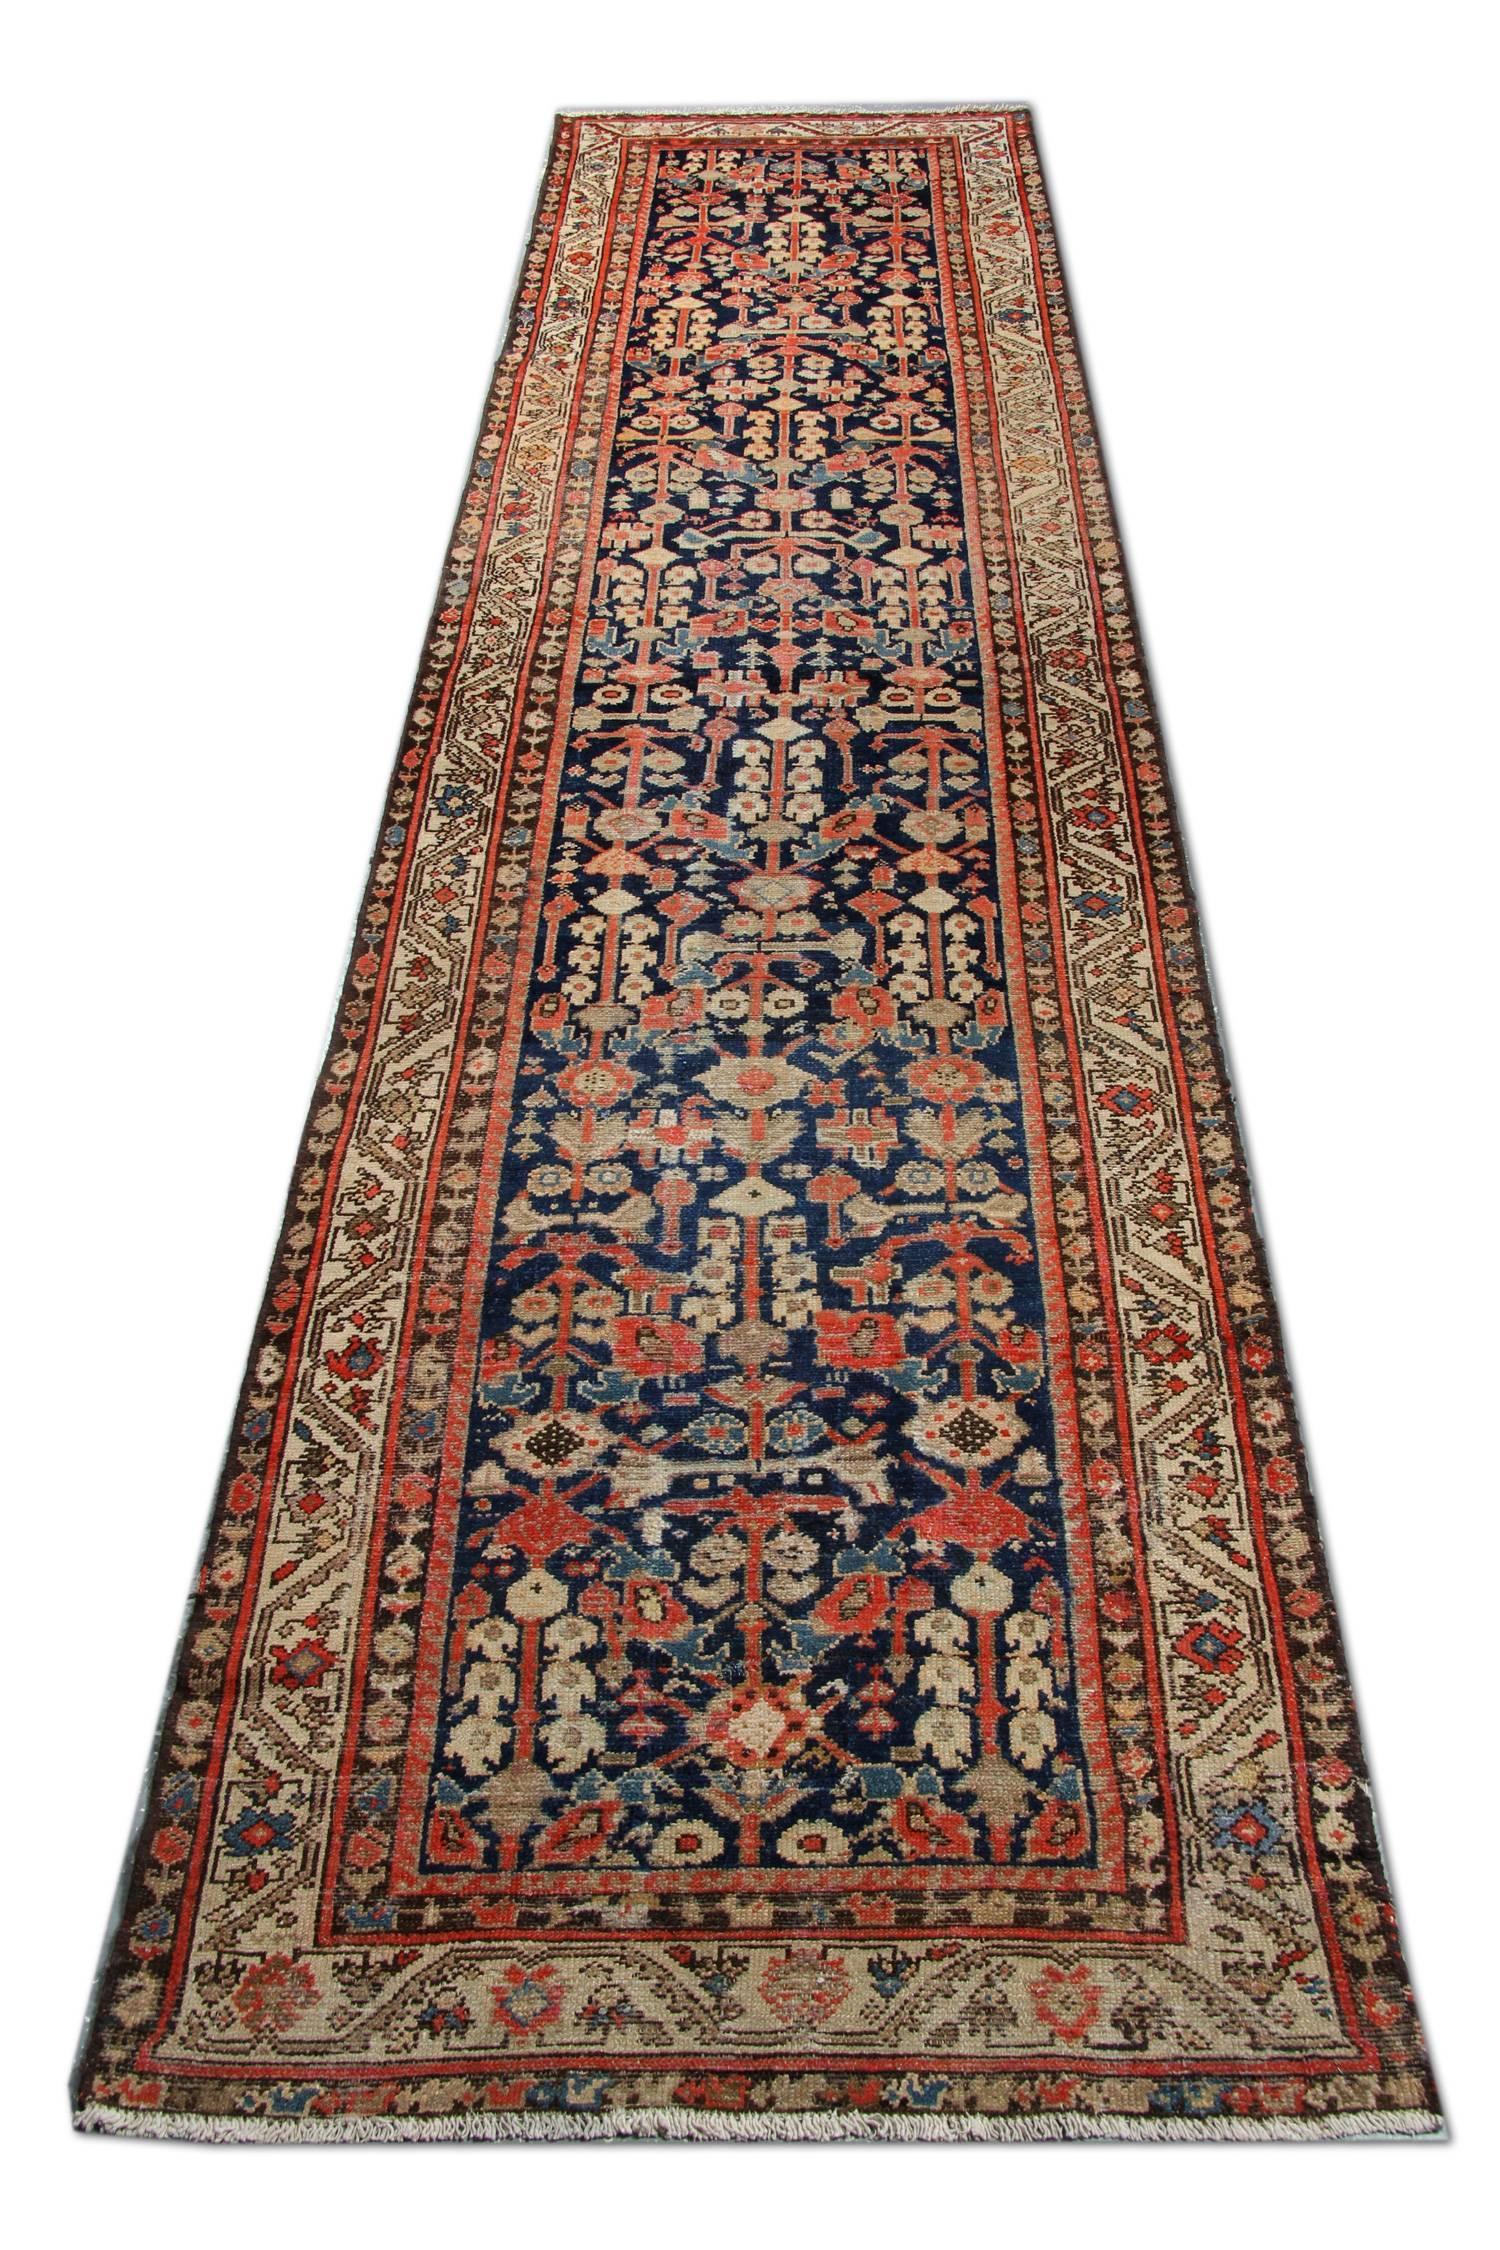 Antique Persian Rugs Malayer Carpet Runners Stair Carpet